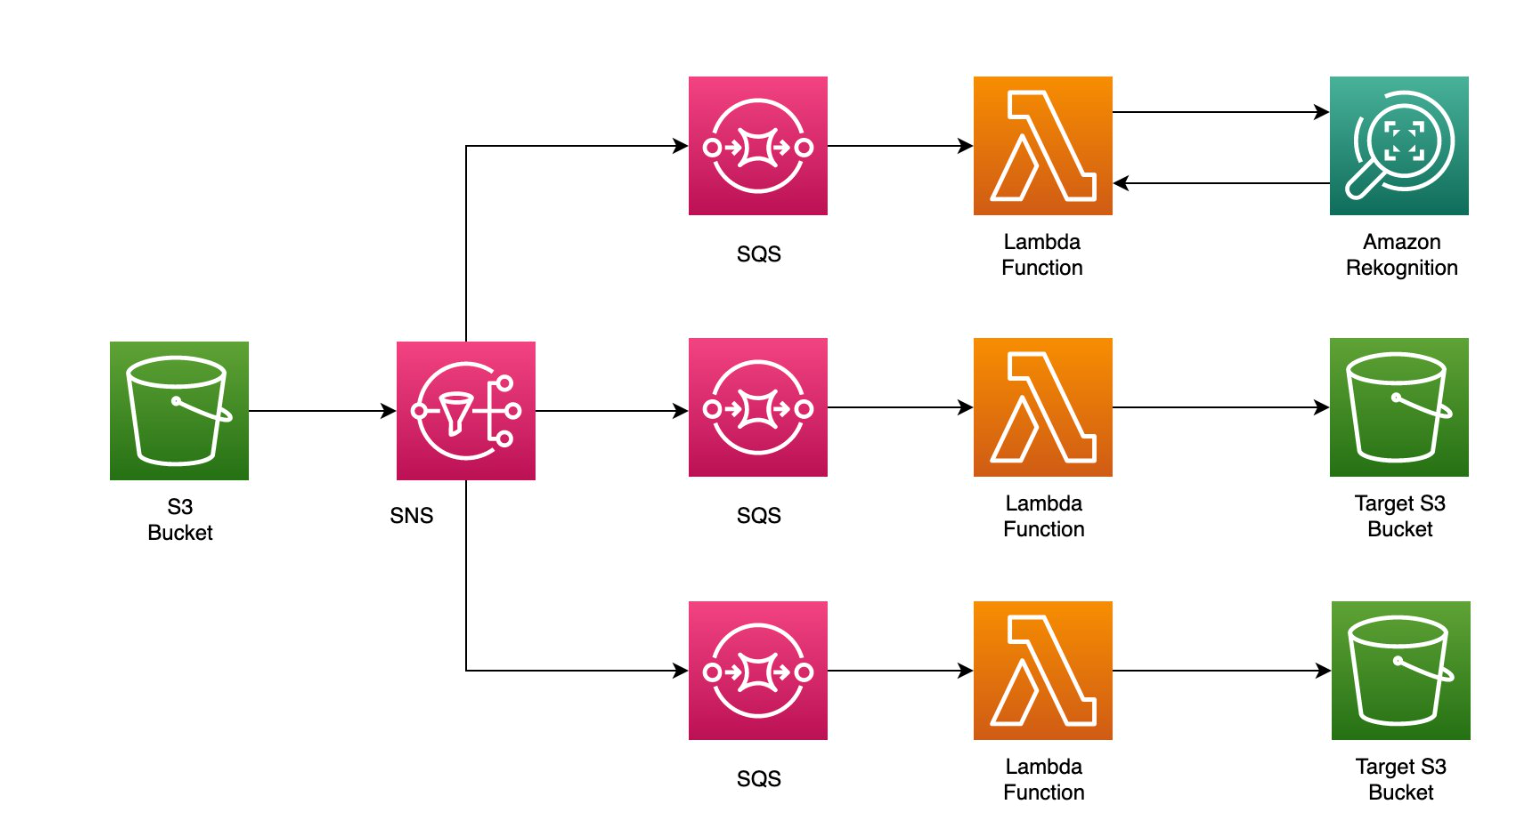 Figure 6. Fan out design pattern with S3, SNS, and SQS before sending to a Lambda function